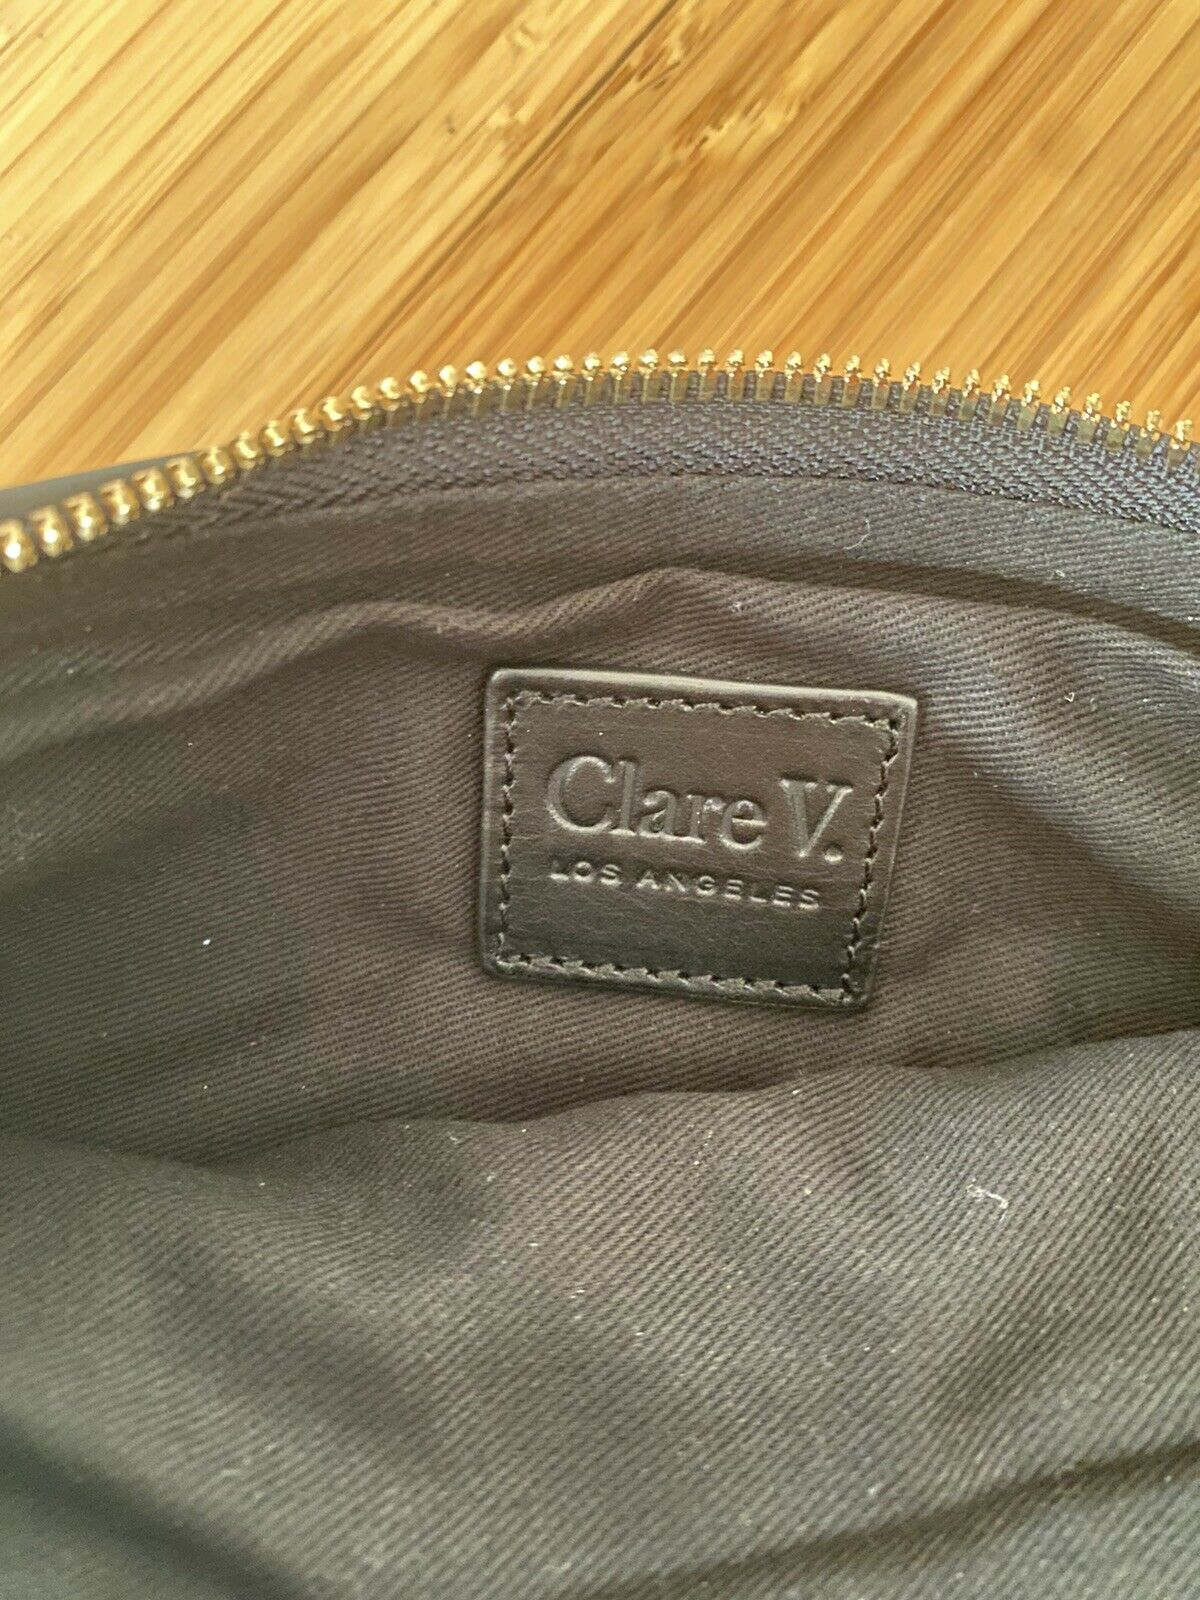 Claire V Woven Leather Clutch Bag - image 4